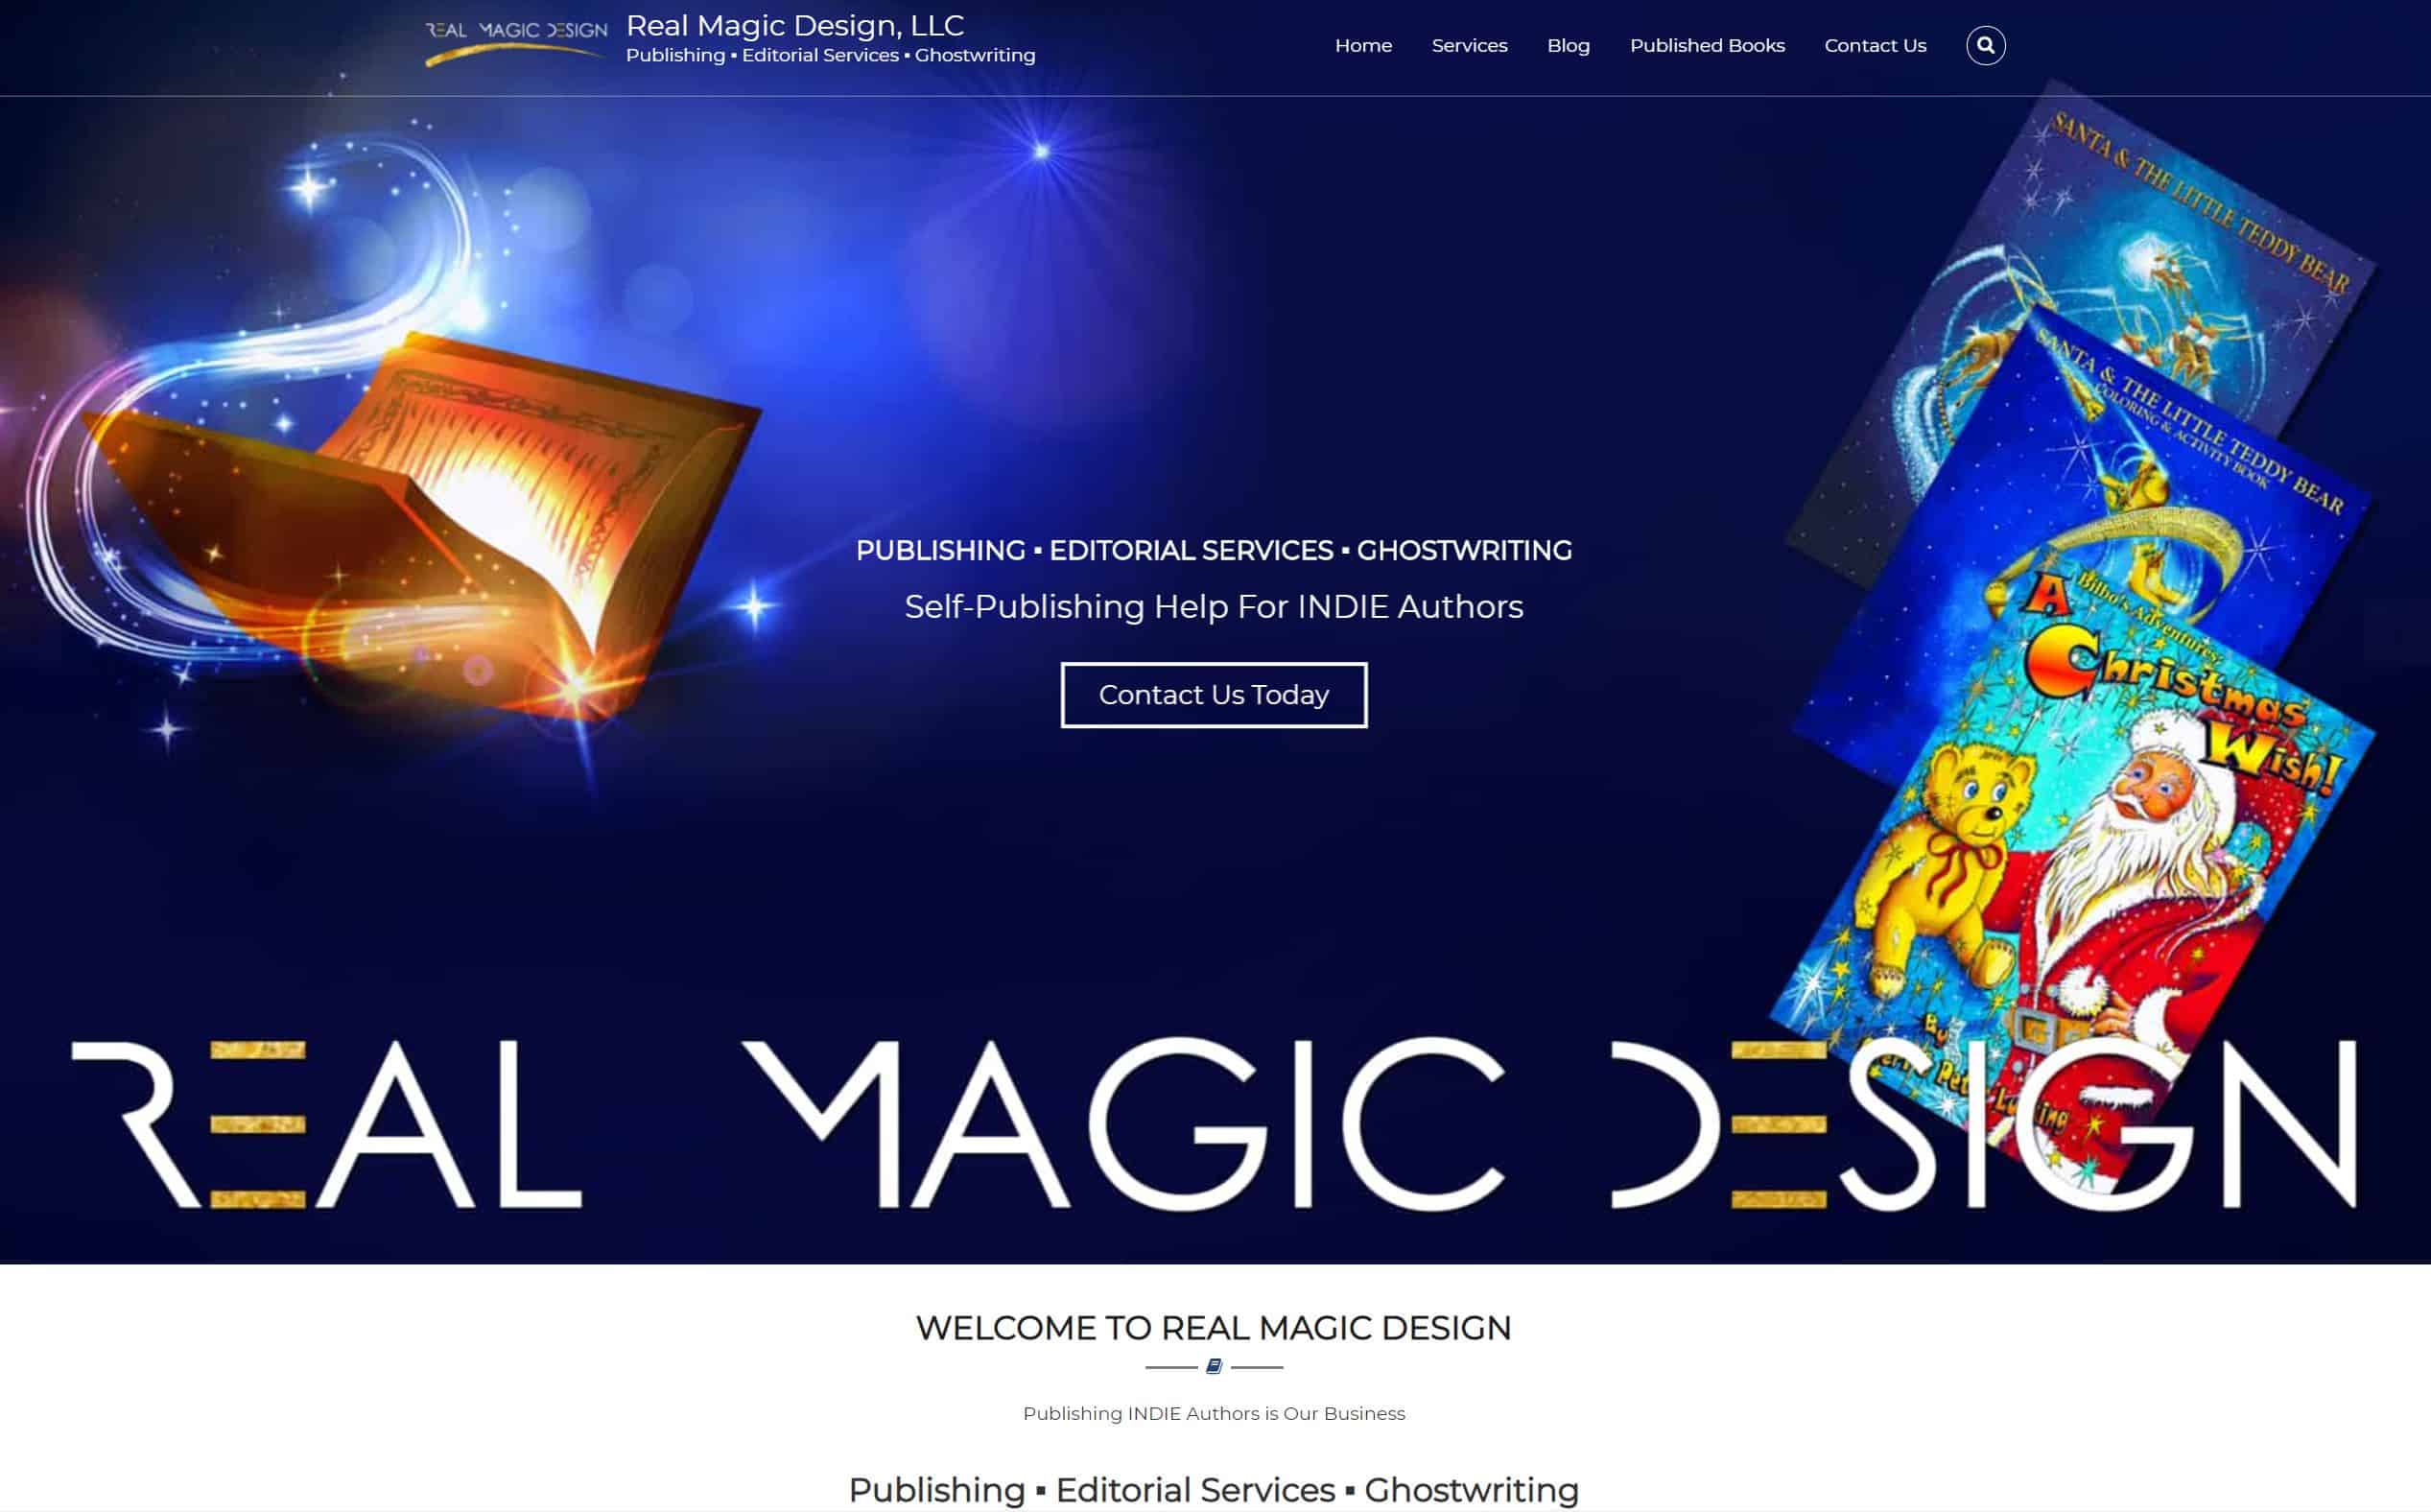 Real Magic Design, LLC - Childrens Books